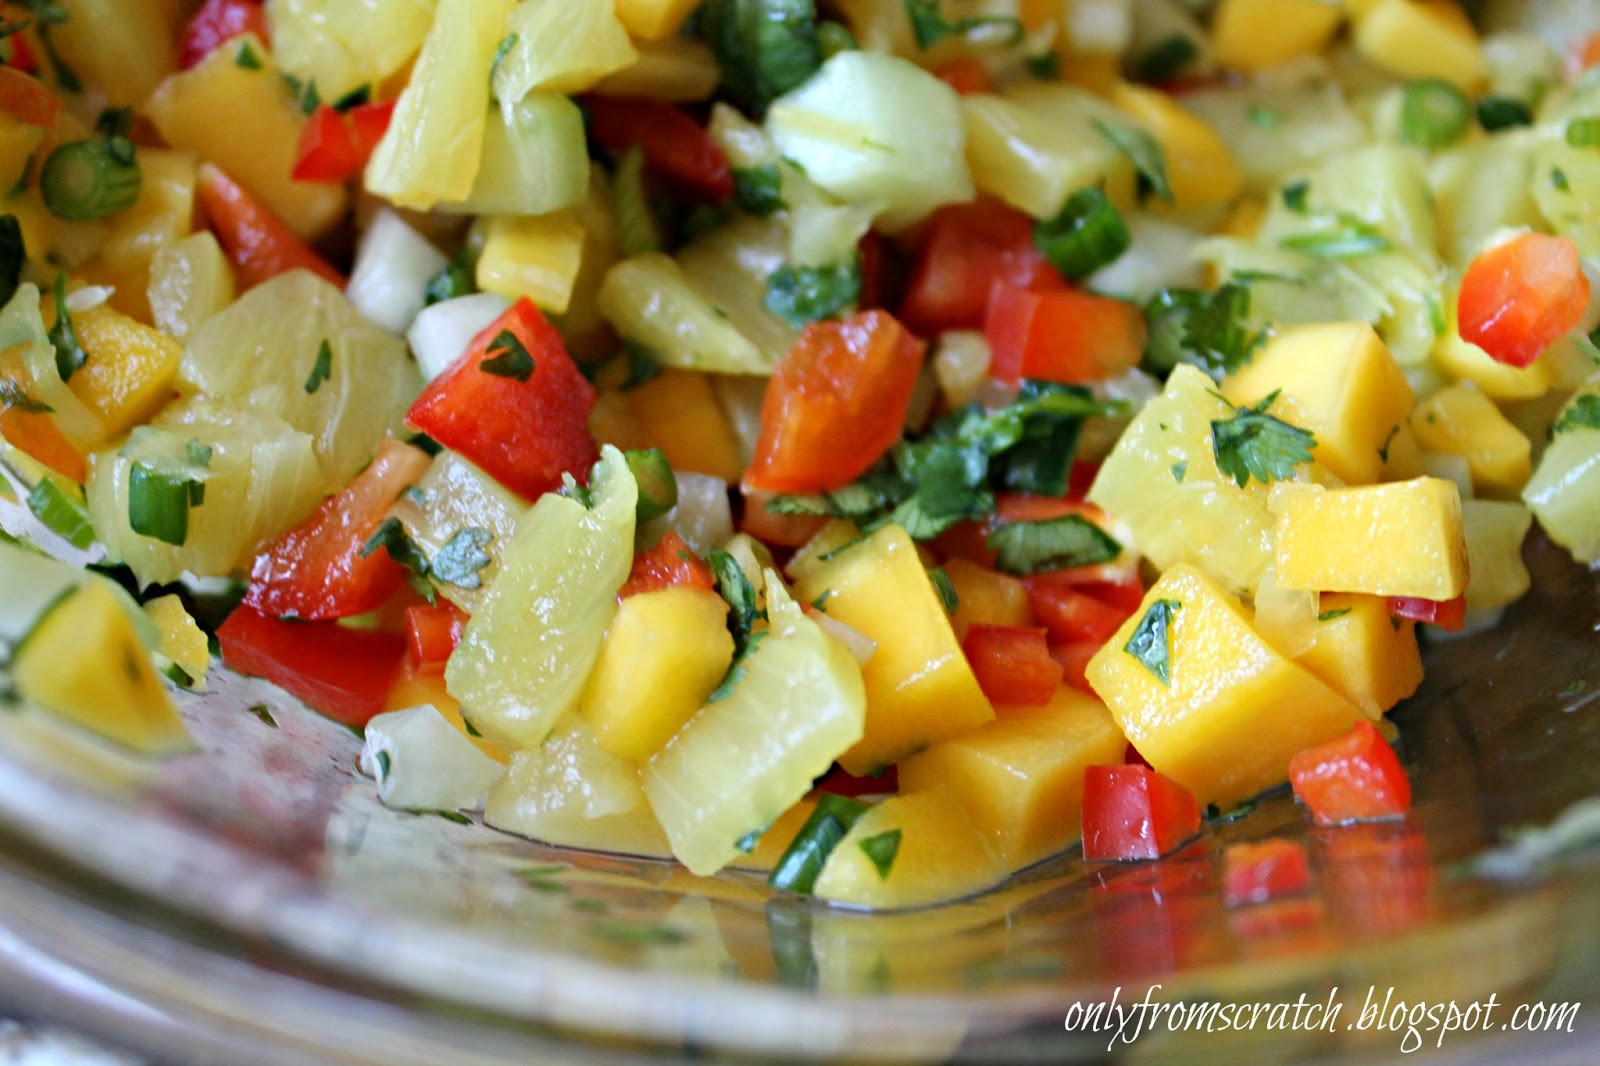 Only From Scratch: Pineapple Mango Salsa